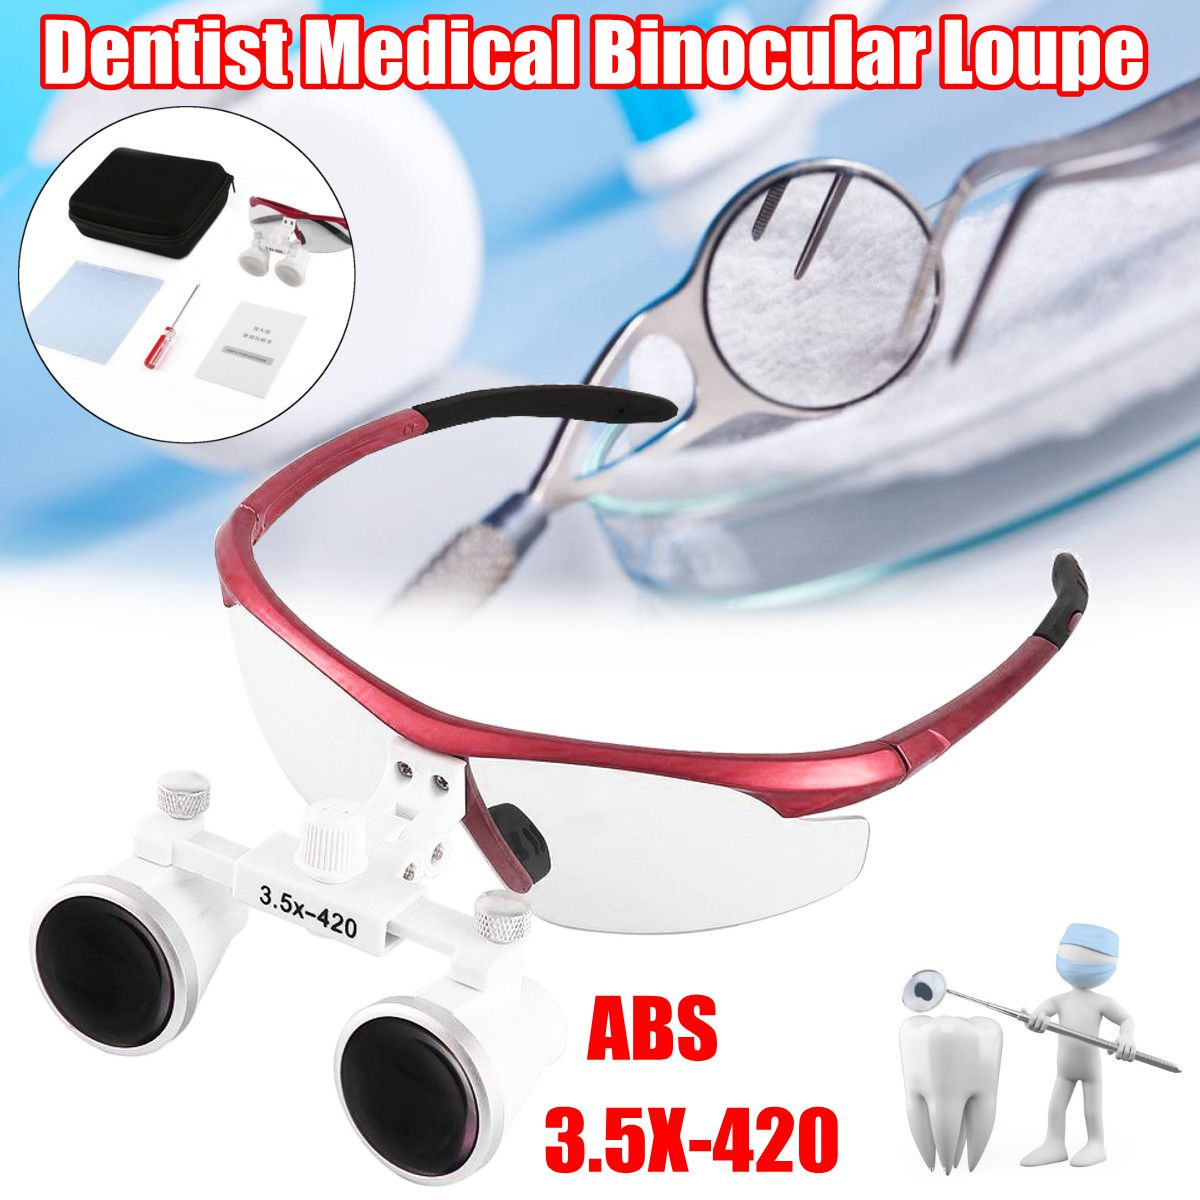 ABS Tool Dental Dentist Medical Binocular Loupe Optical Glass Magnifier Clinical Dentist Surgery Loupe Red 3.5X-420 clinical